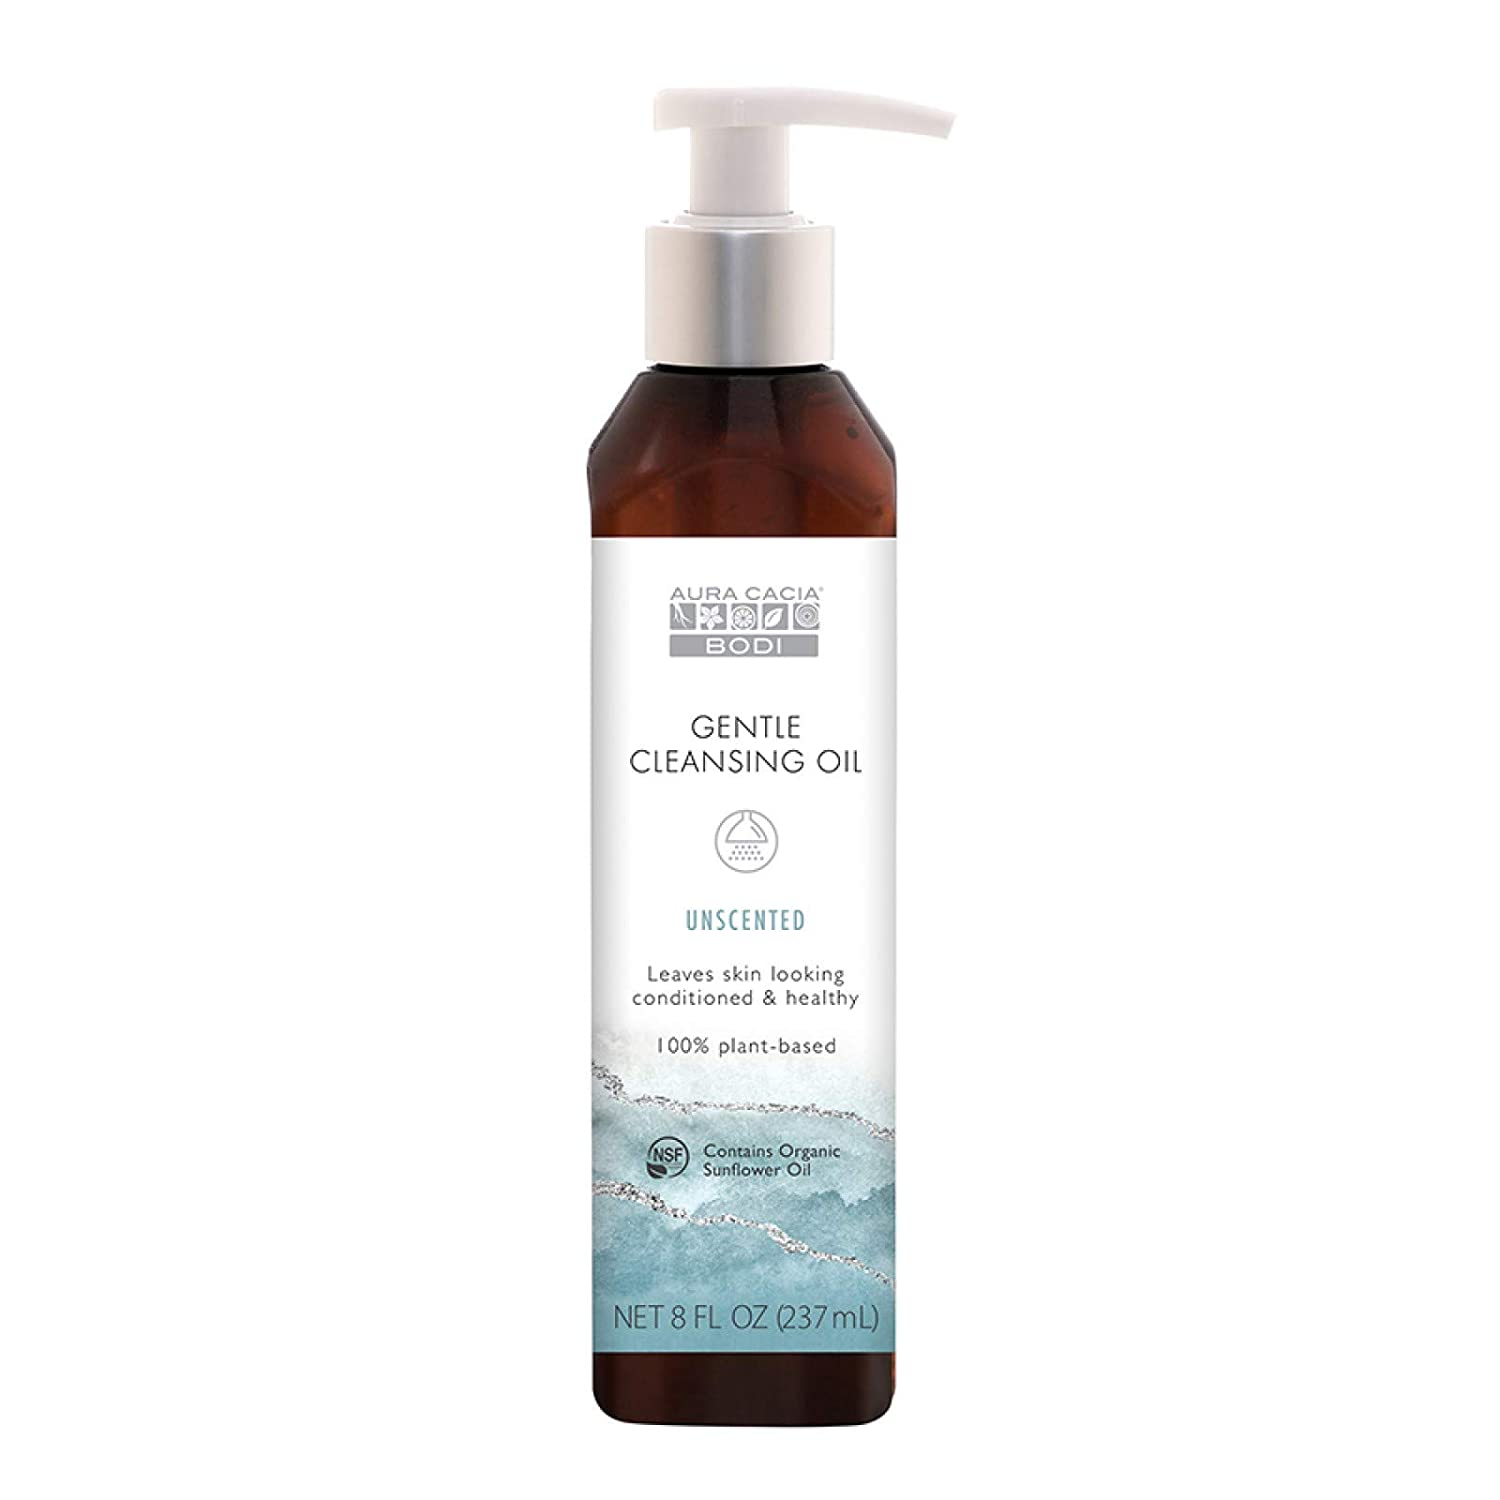 Aura Cacia Bodi Unscented Gentle Cleansing Oil   GC/MS Tested for Purity   240ml (8 fl. oz.)